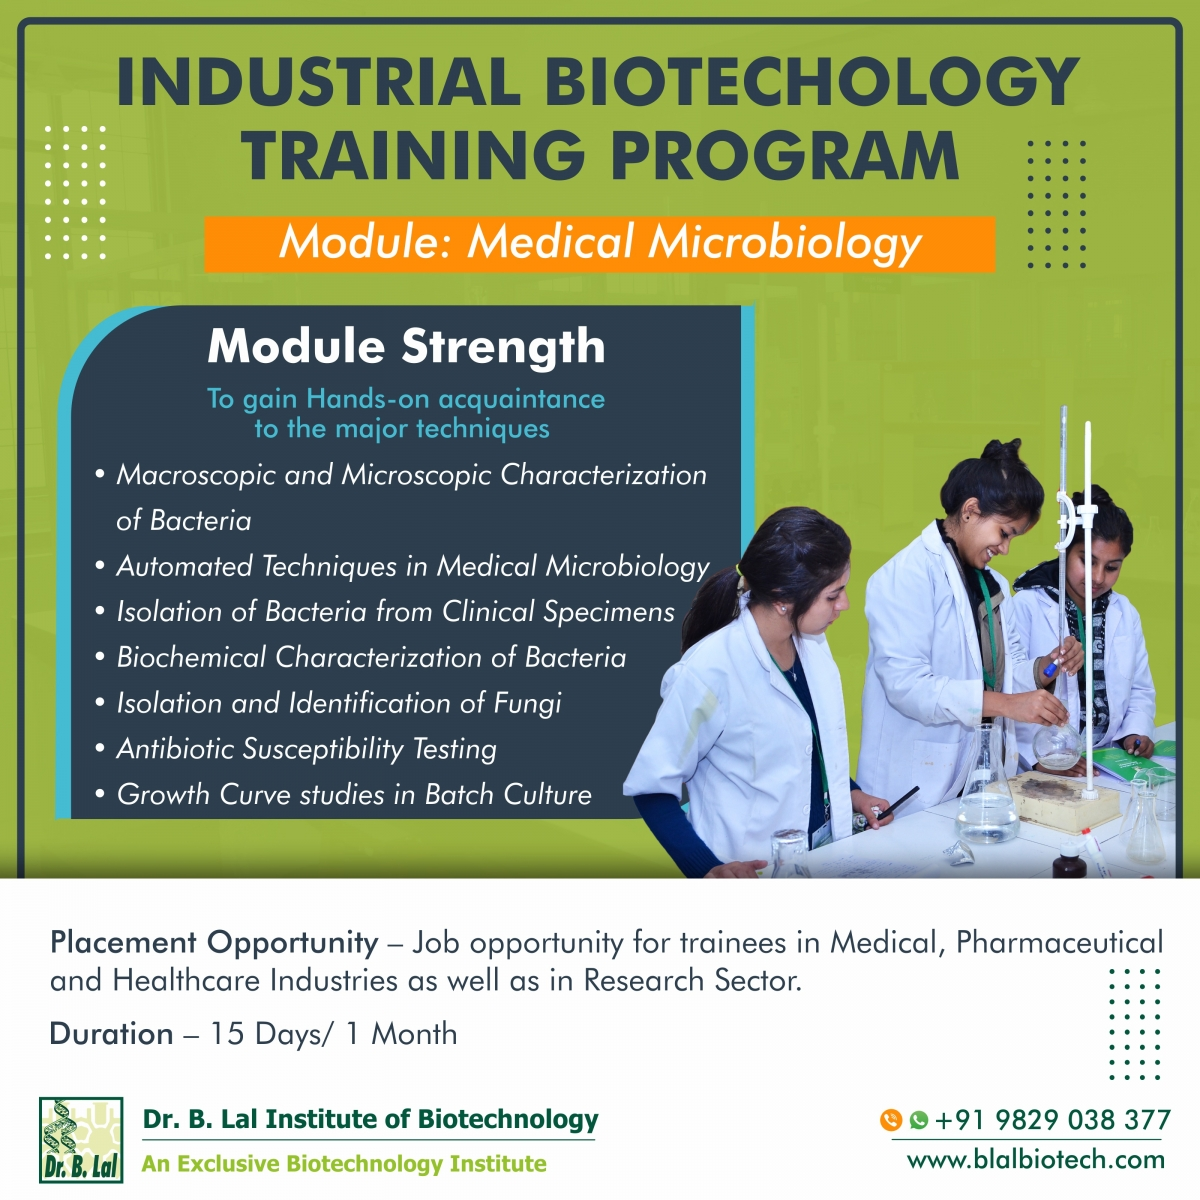 Industrial Biotechnology Training Program | Module: Medical Microbiology